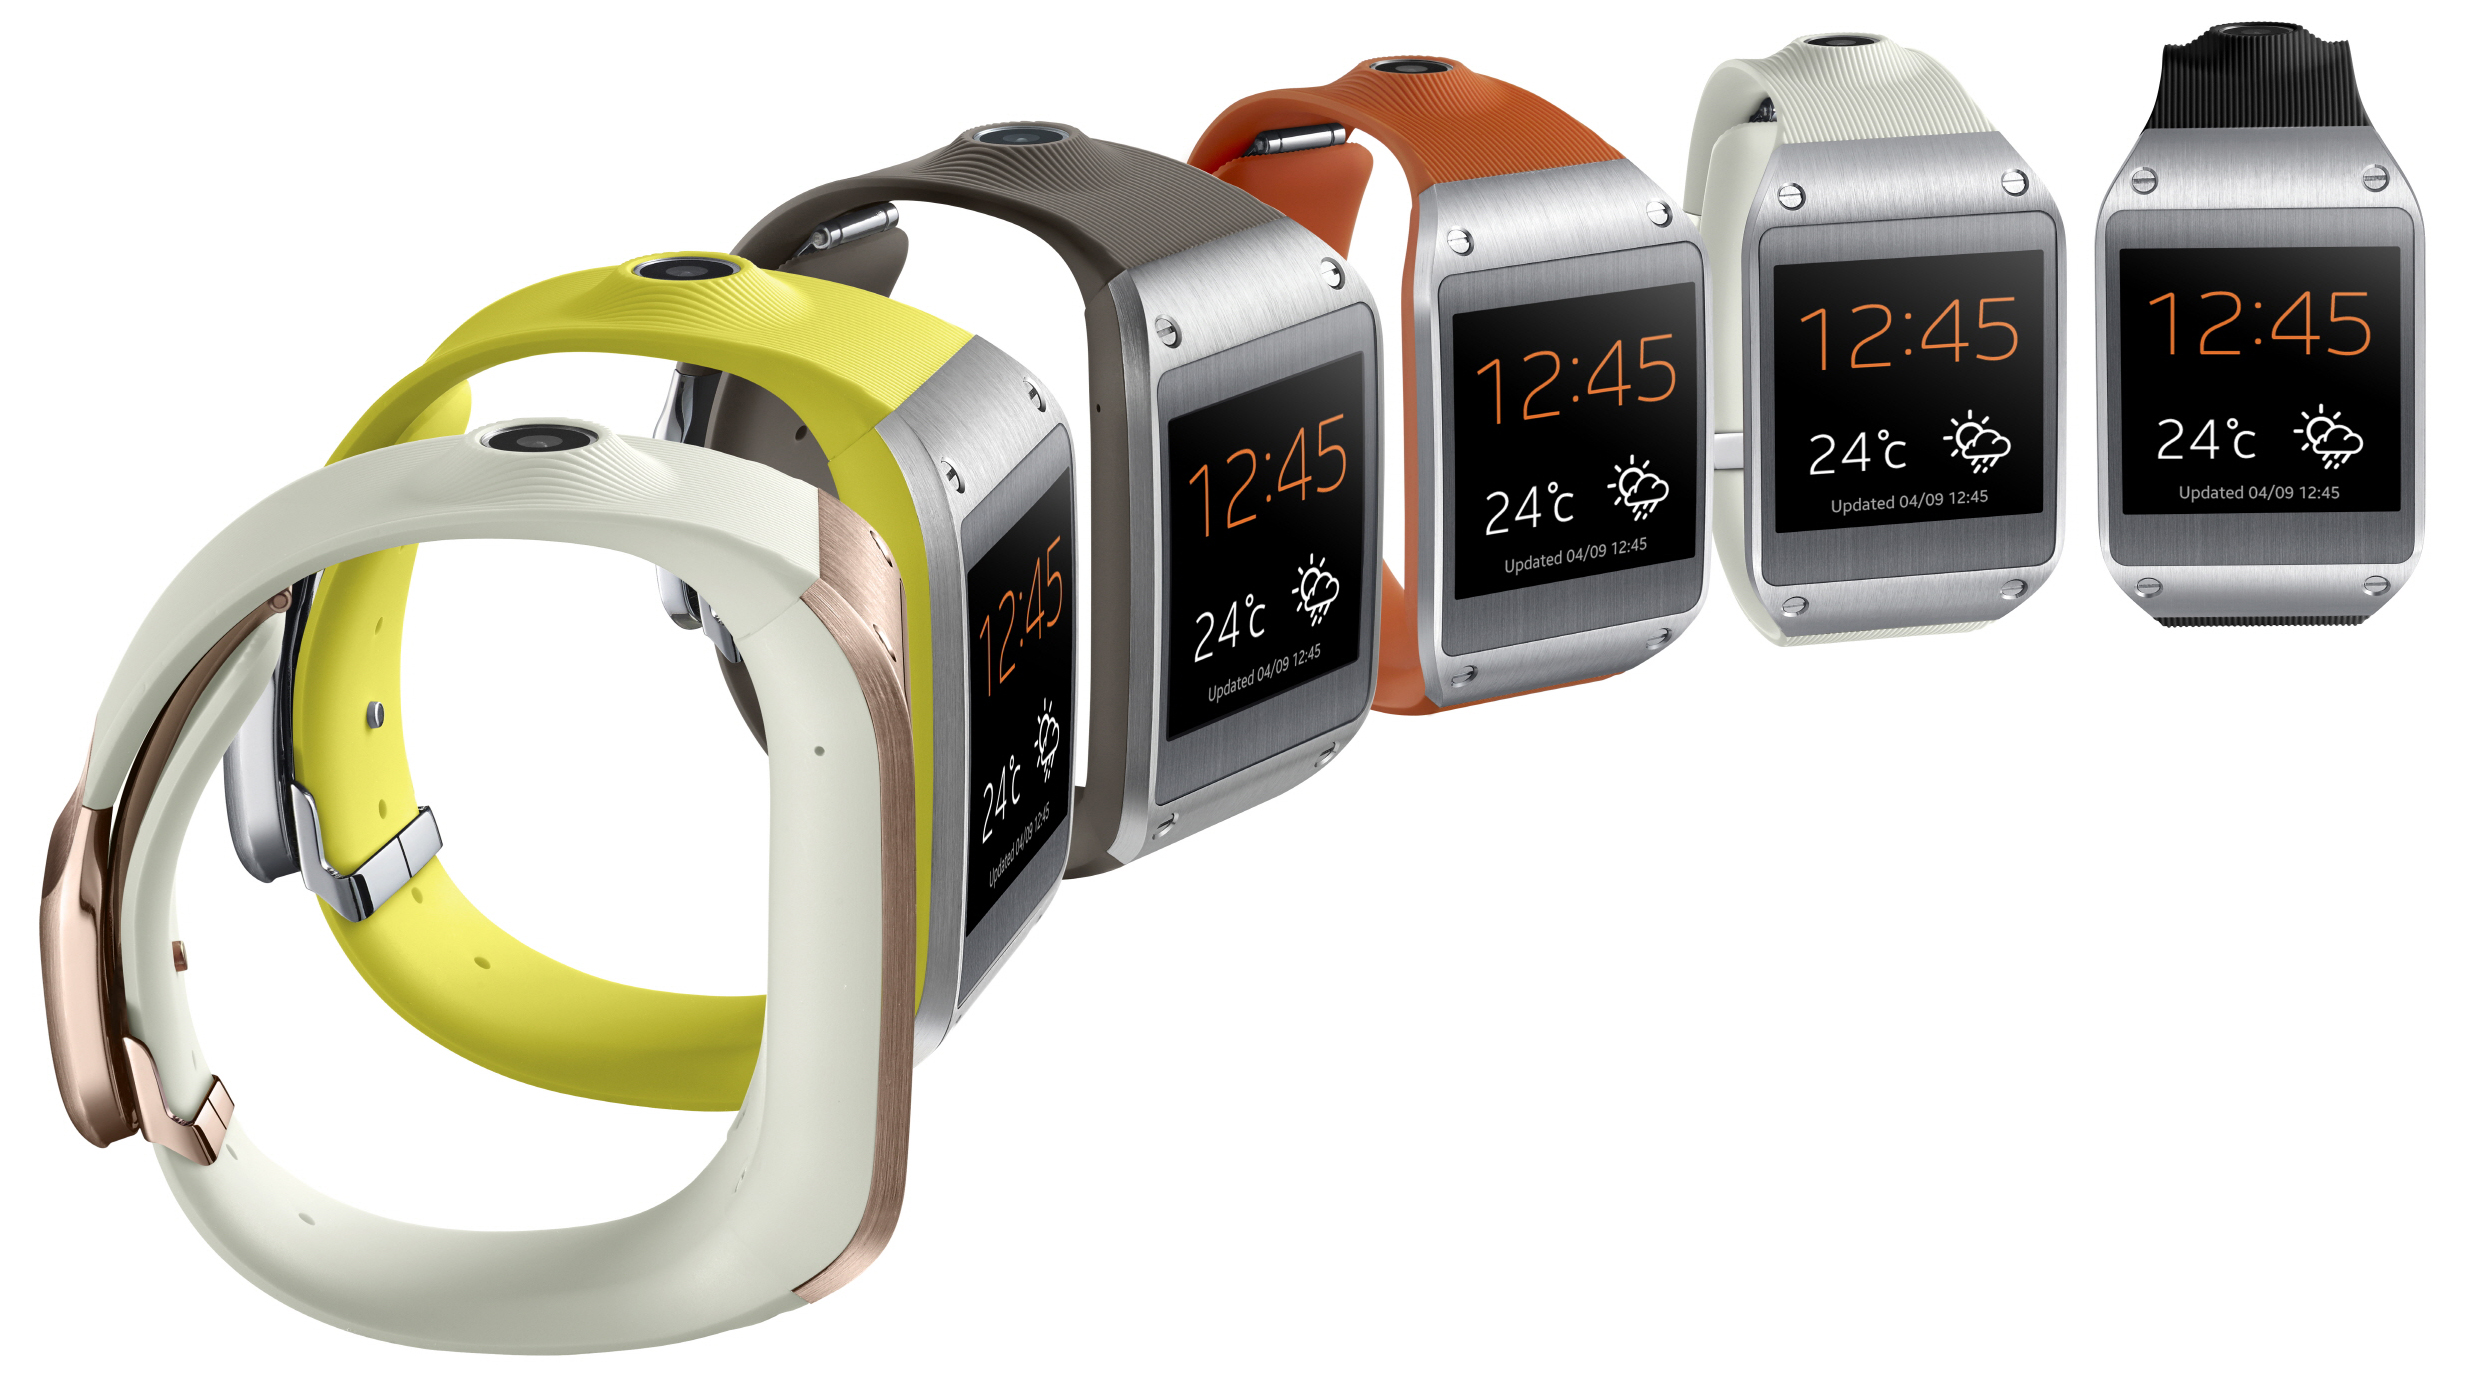 Several Galaxy gear watches in a row